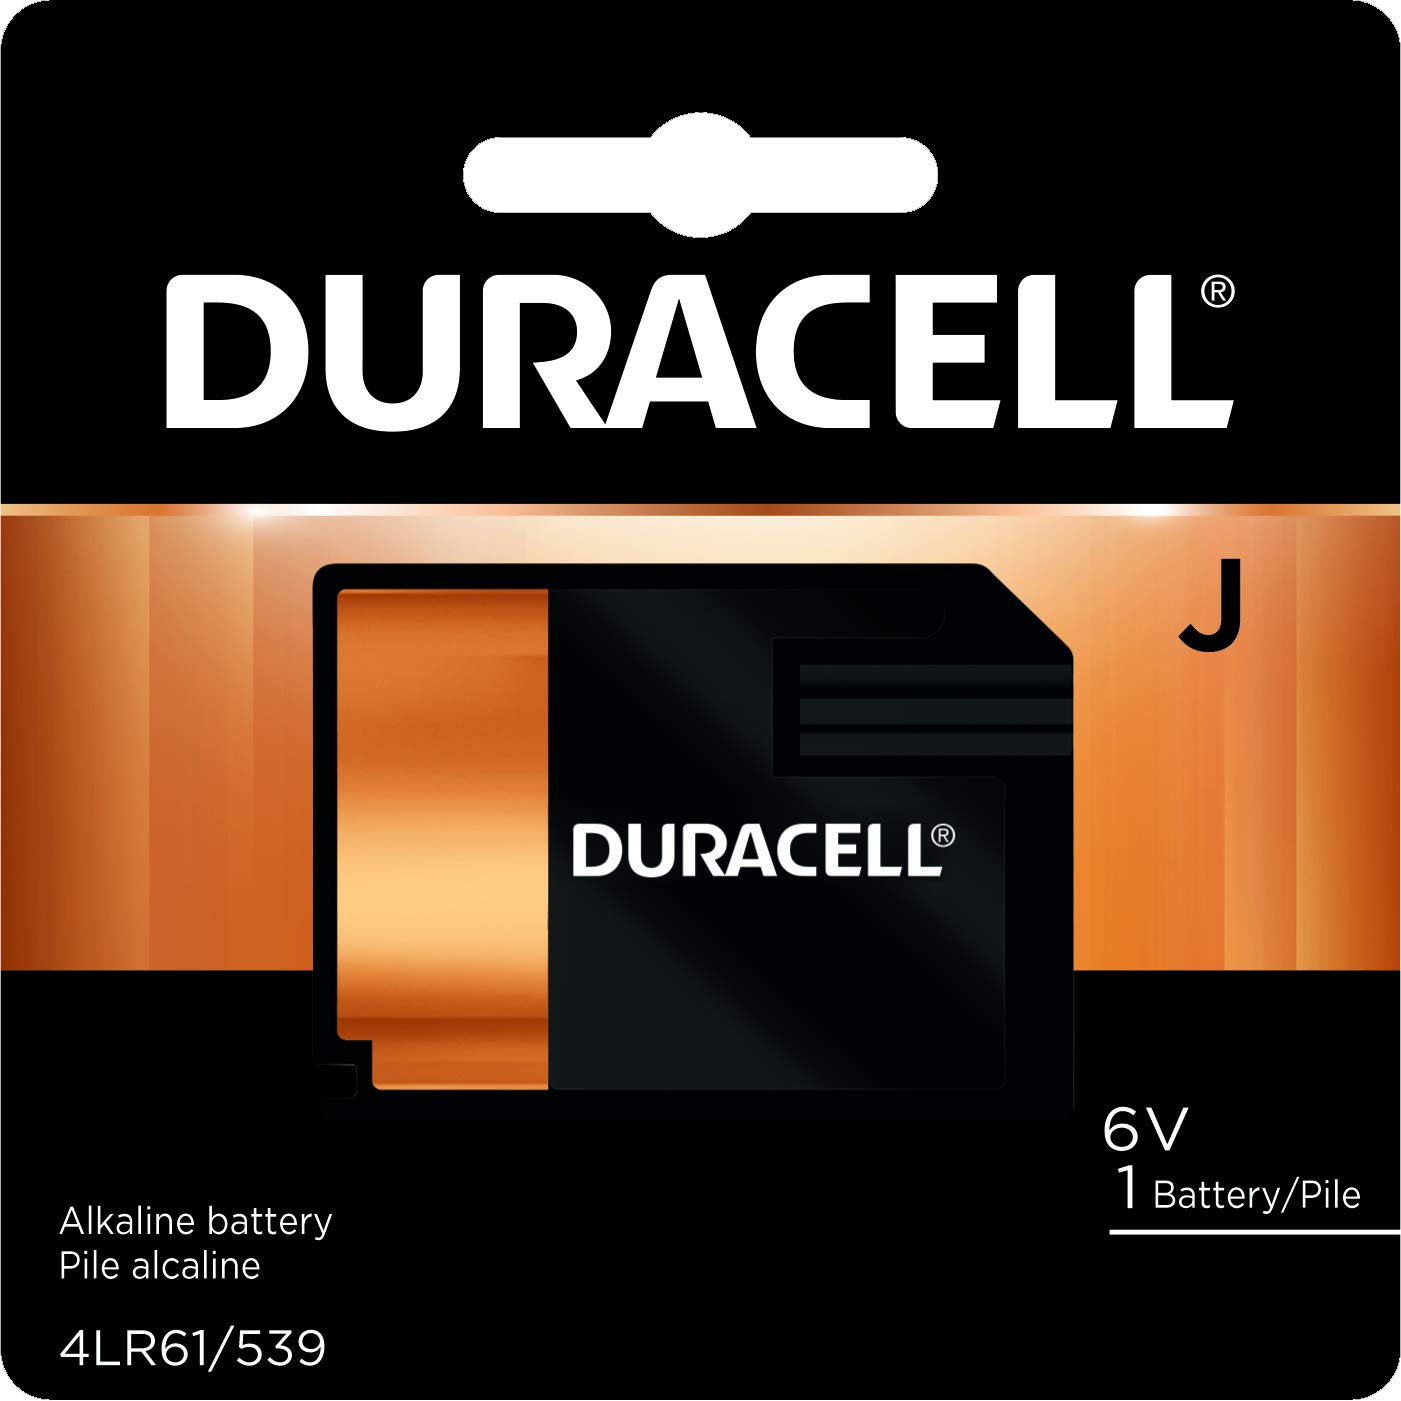 Duracell – J 6V Specialty Alkaline Battery – long-lasting battery – 1 count 7K67BPK